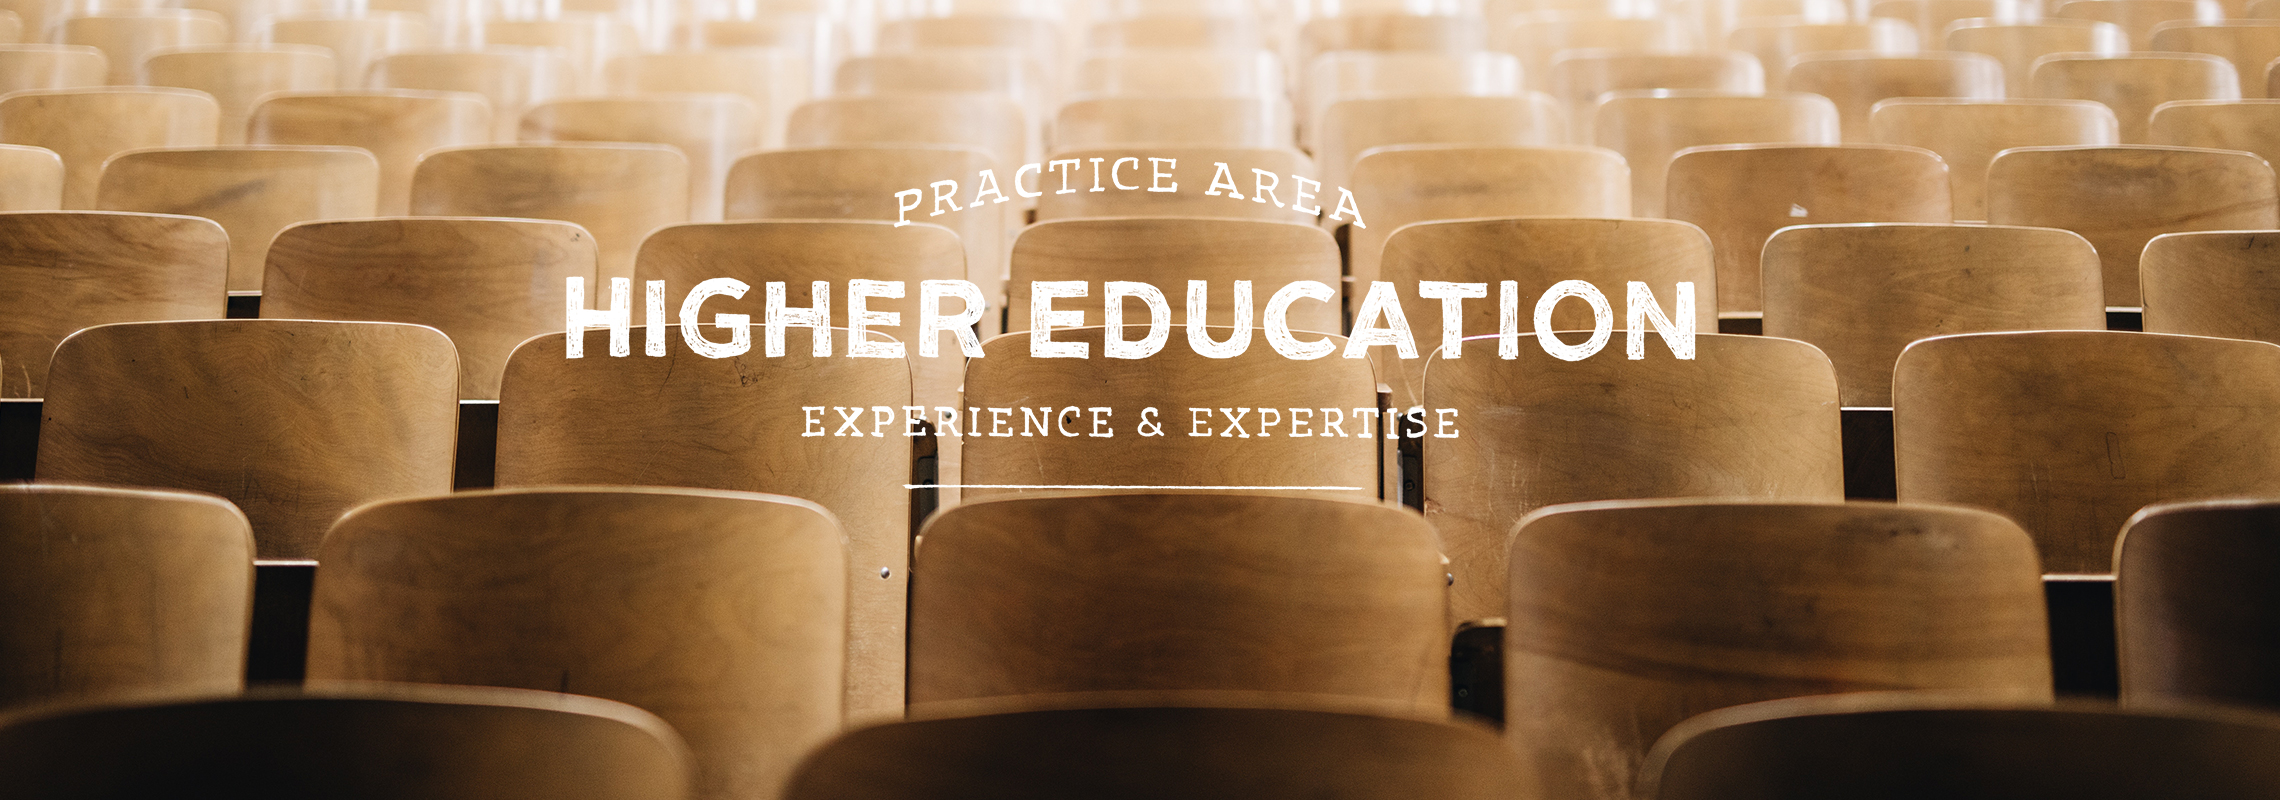 practice area higher education experience and expertise